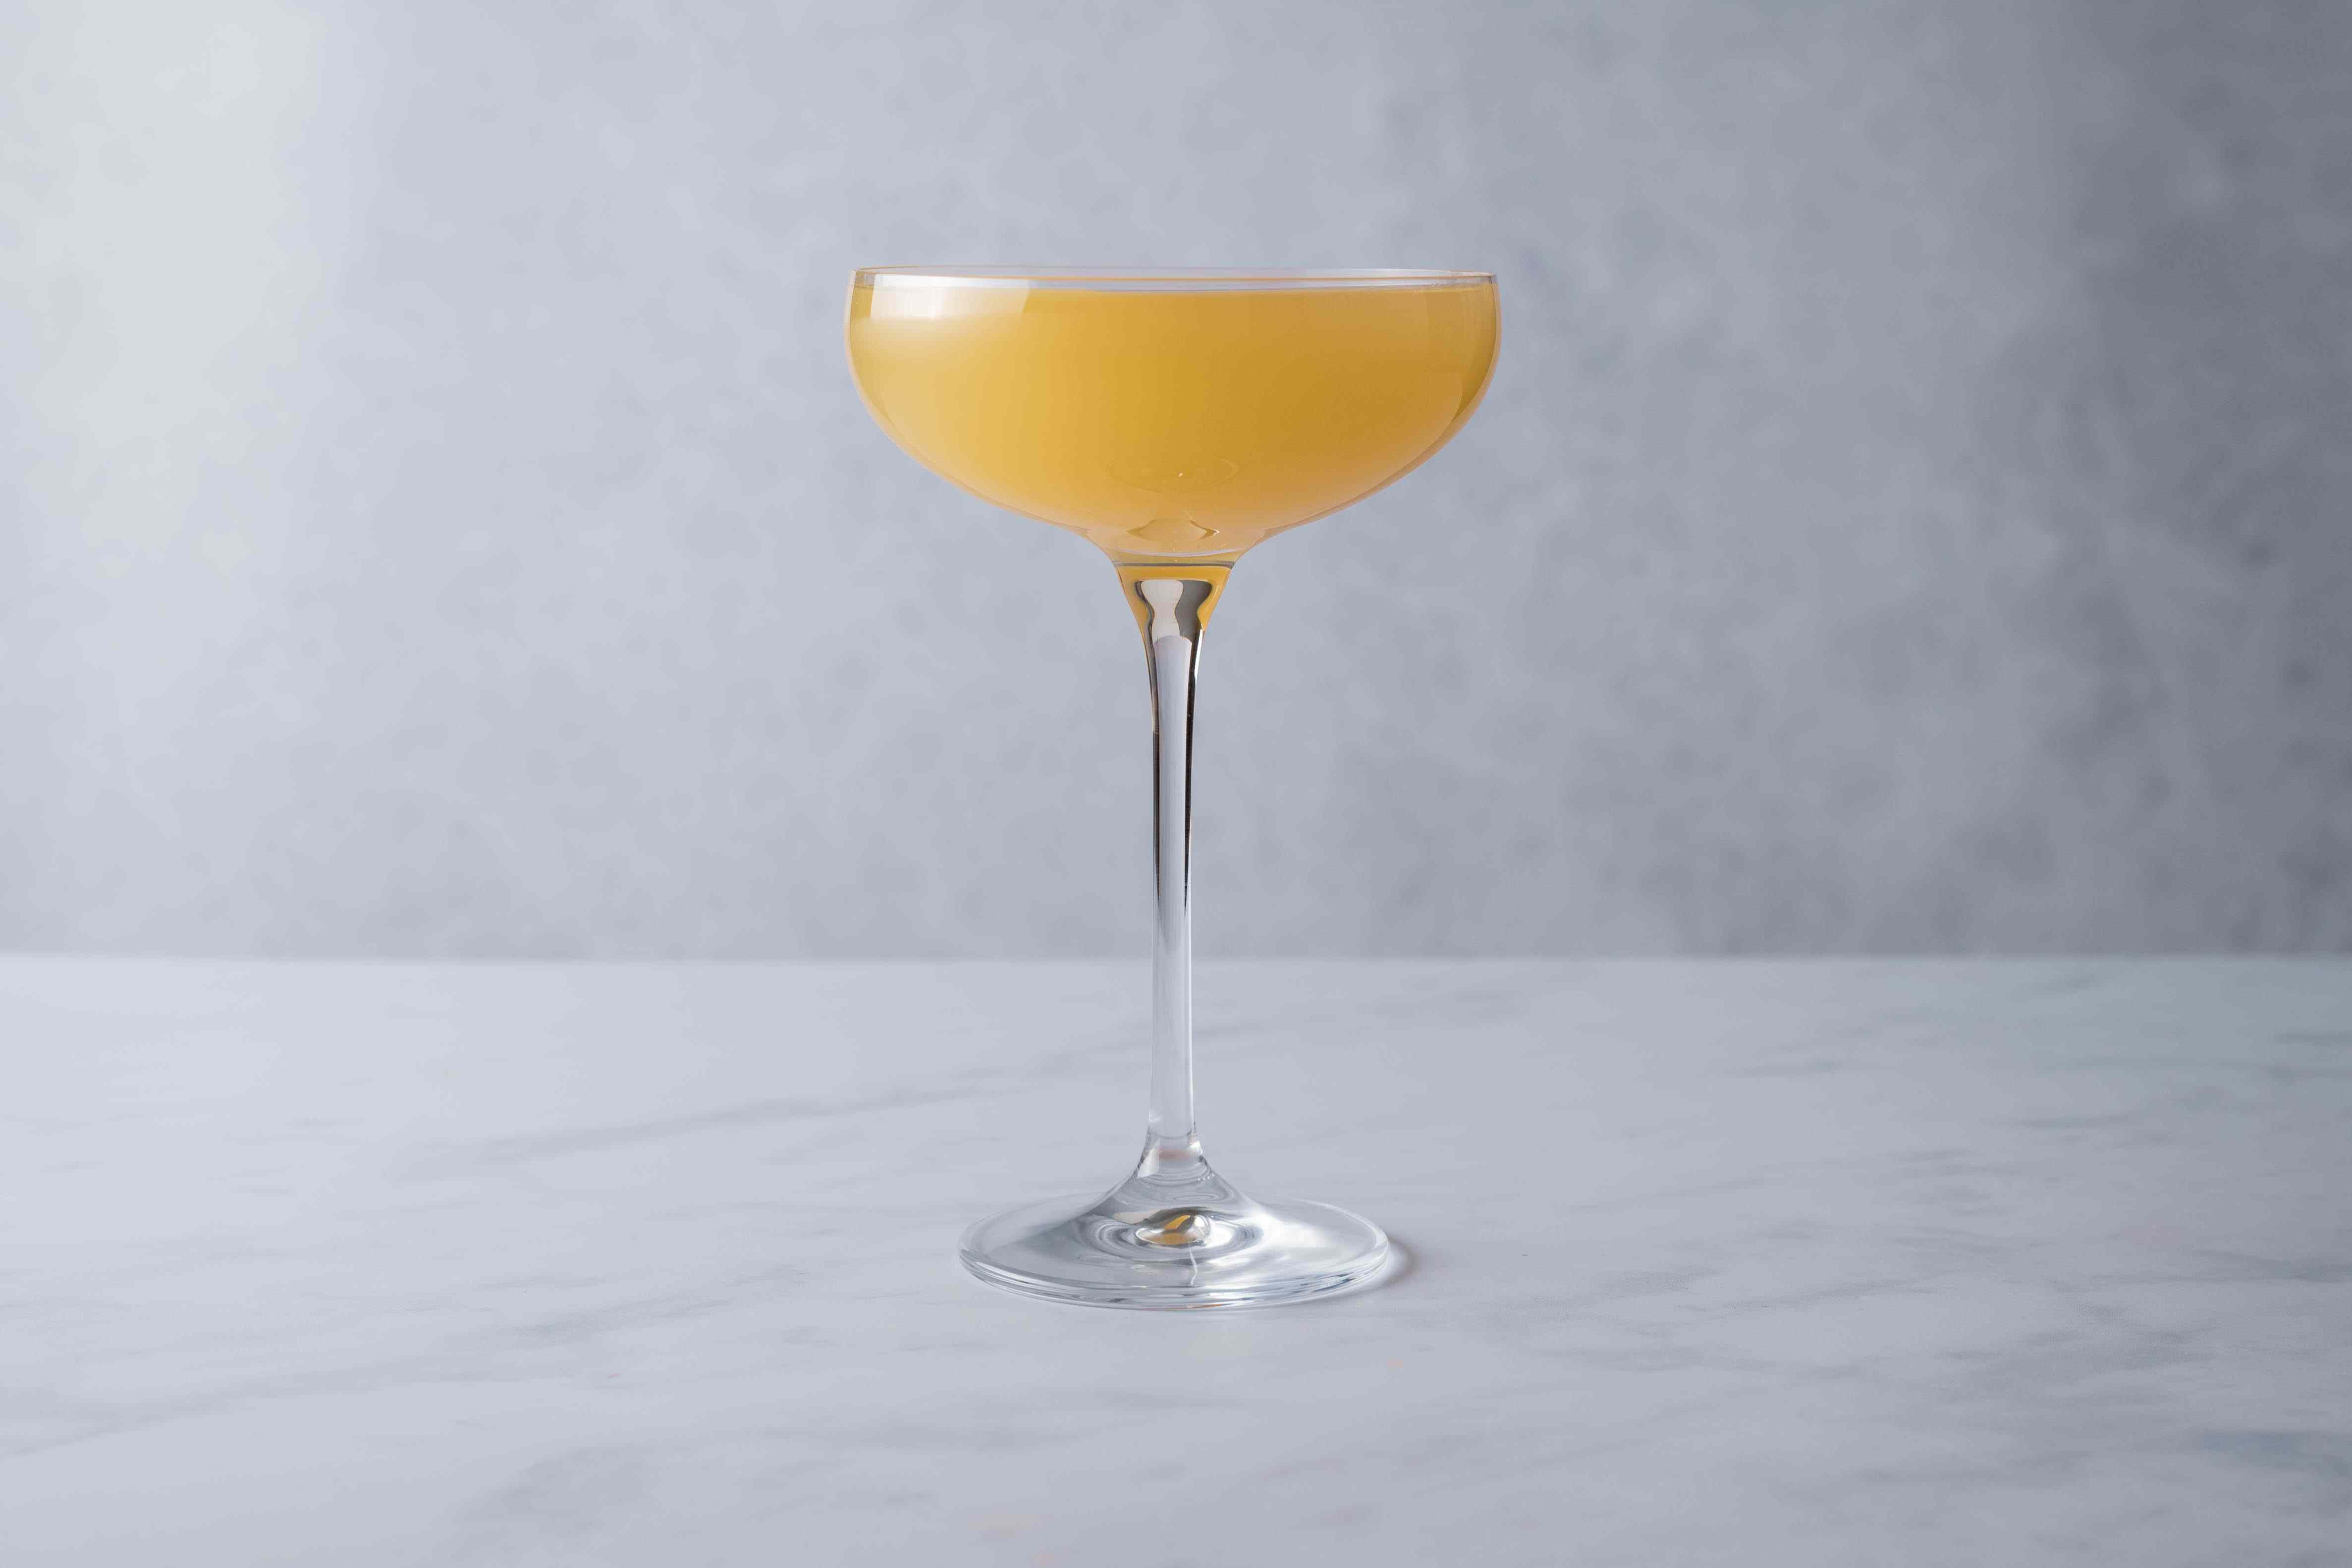 Strain cocktail into a chilled cocktail glass.